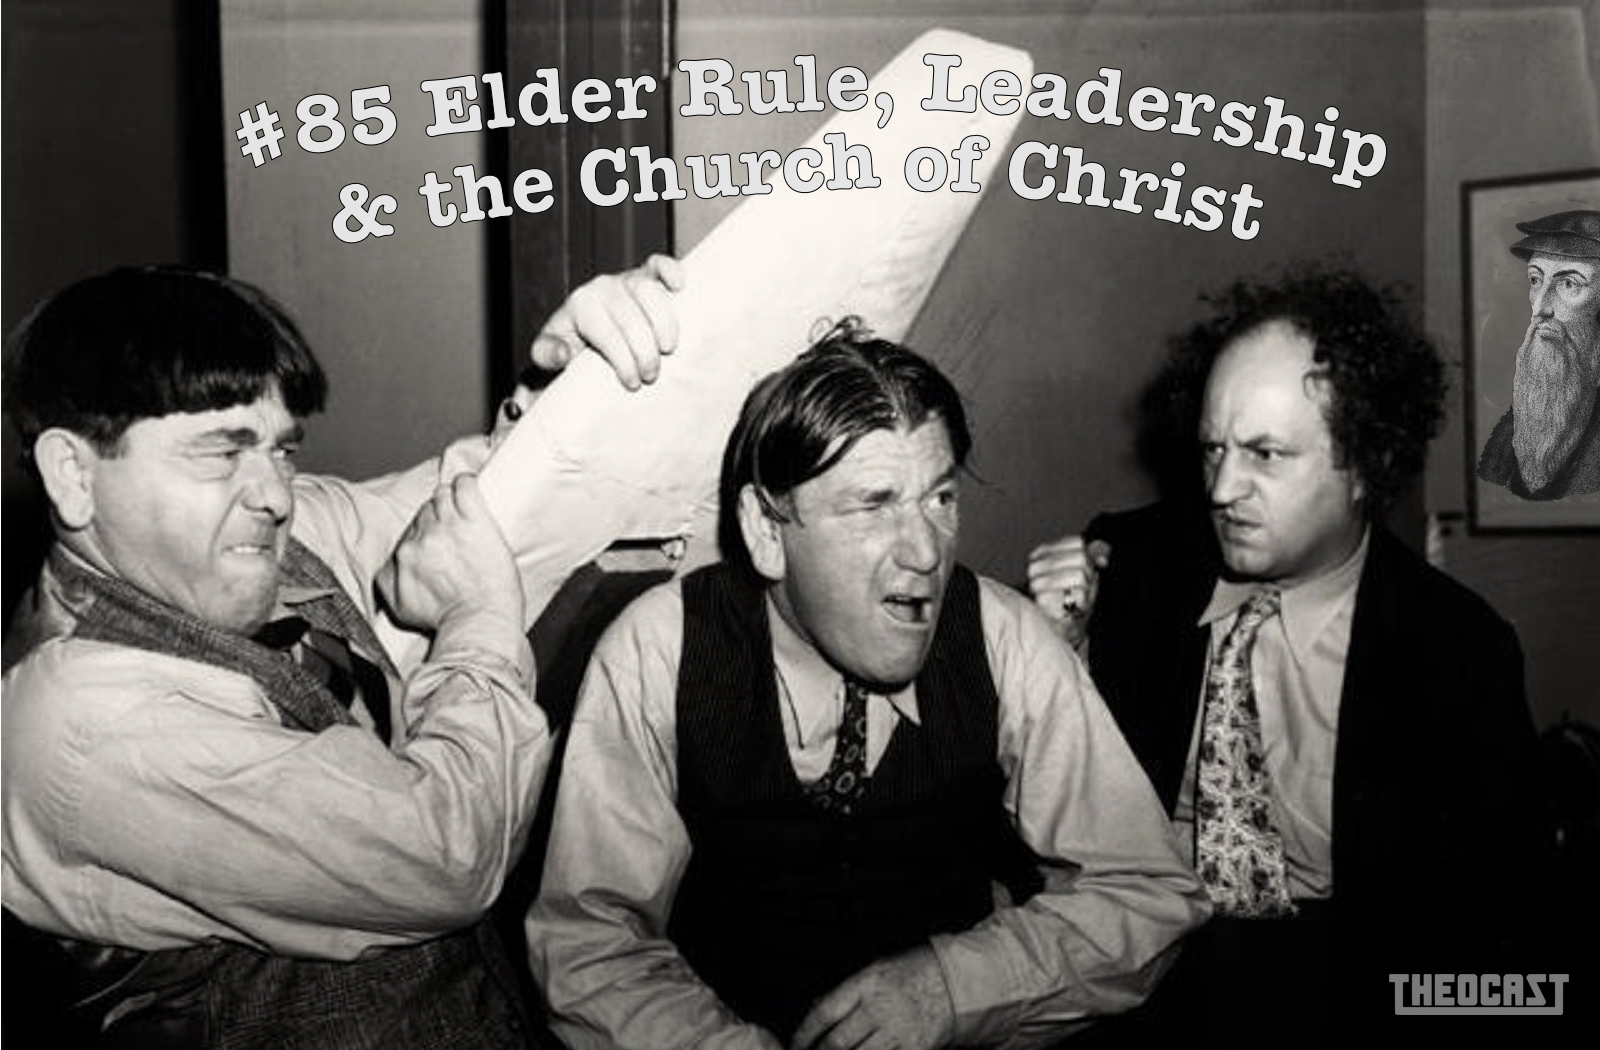 #85 Elder Rule, Leadership and the Church of Christ